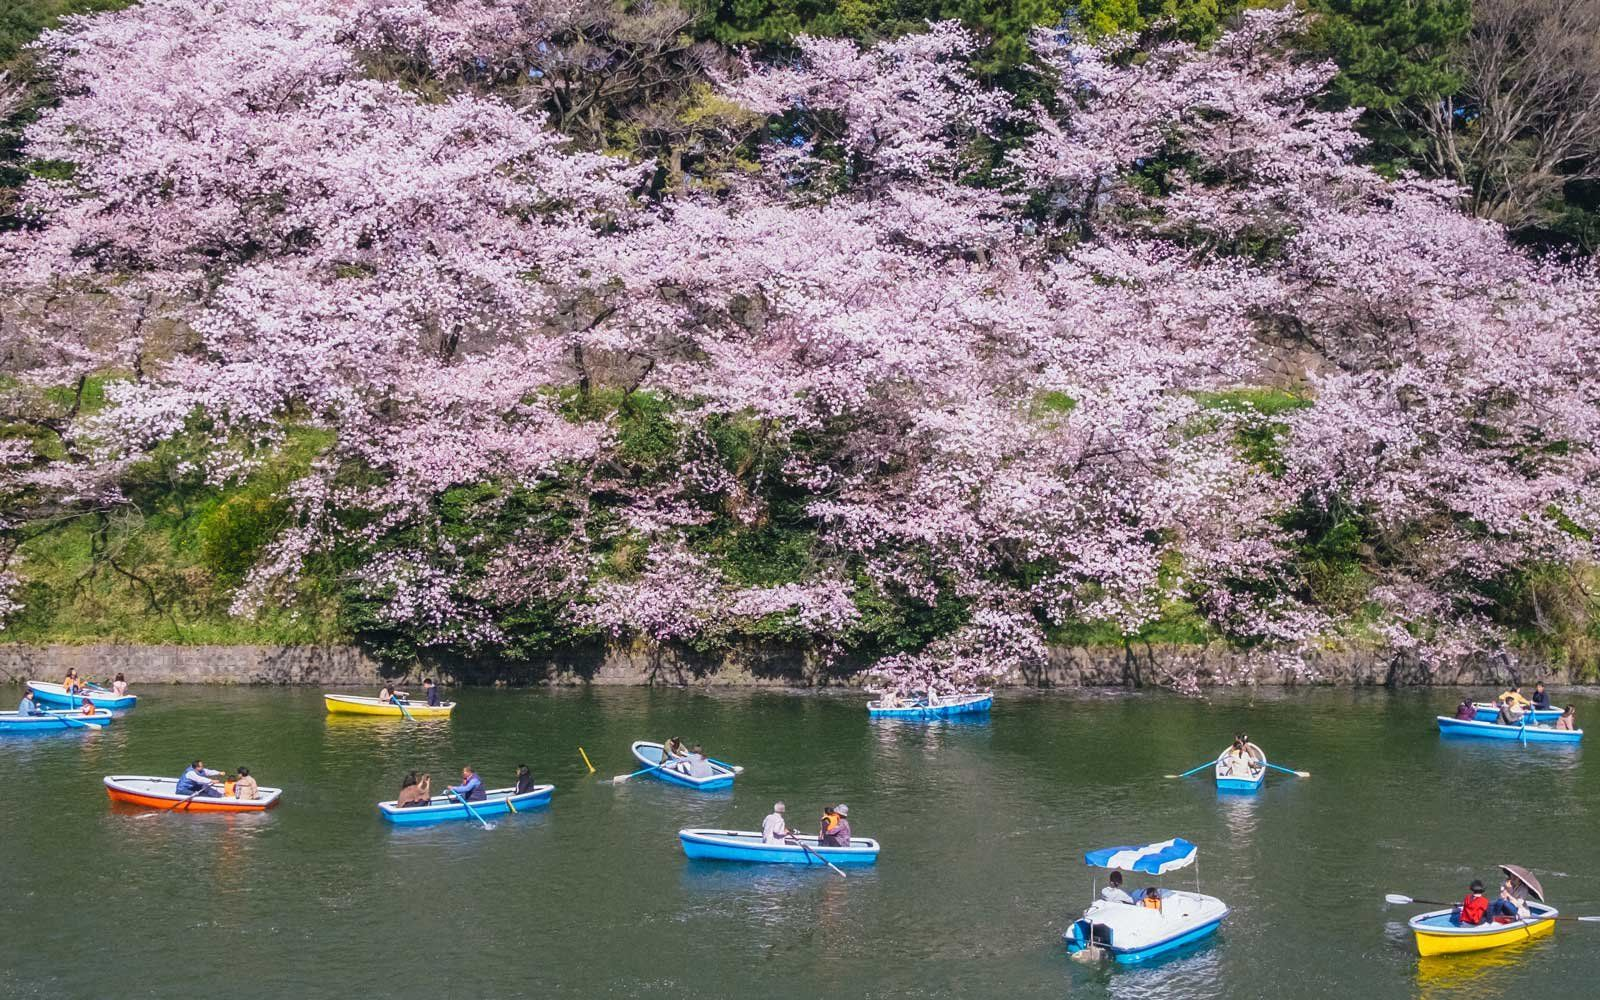 Japan S Cherry Blossoms Are Predicted To Arrive Early This Year Here S When You Can Expect To See Them Japanese Flowers Japan Cherry Blossom Season Cherry Blossom Japan